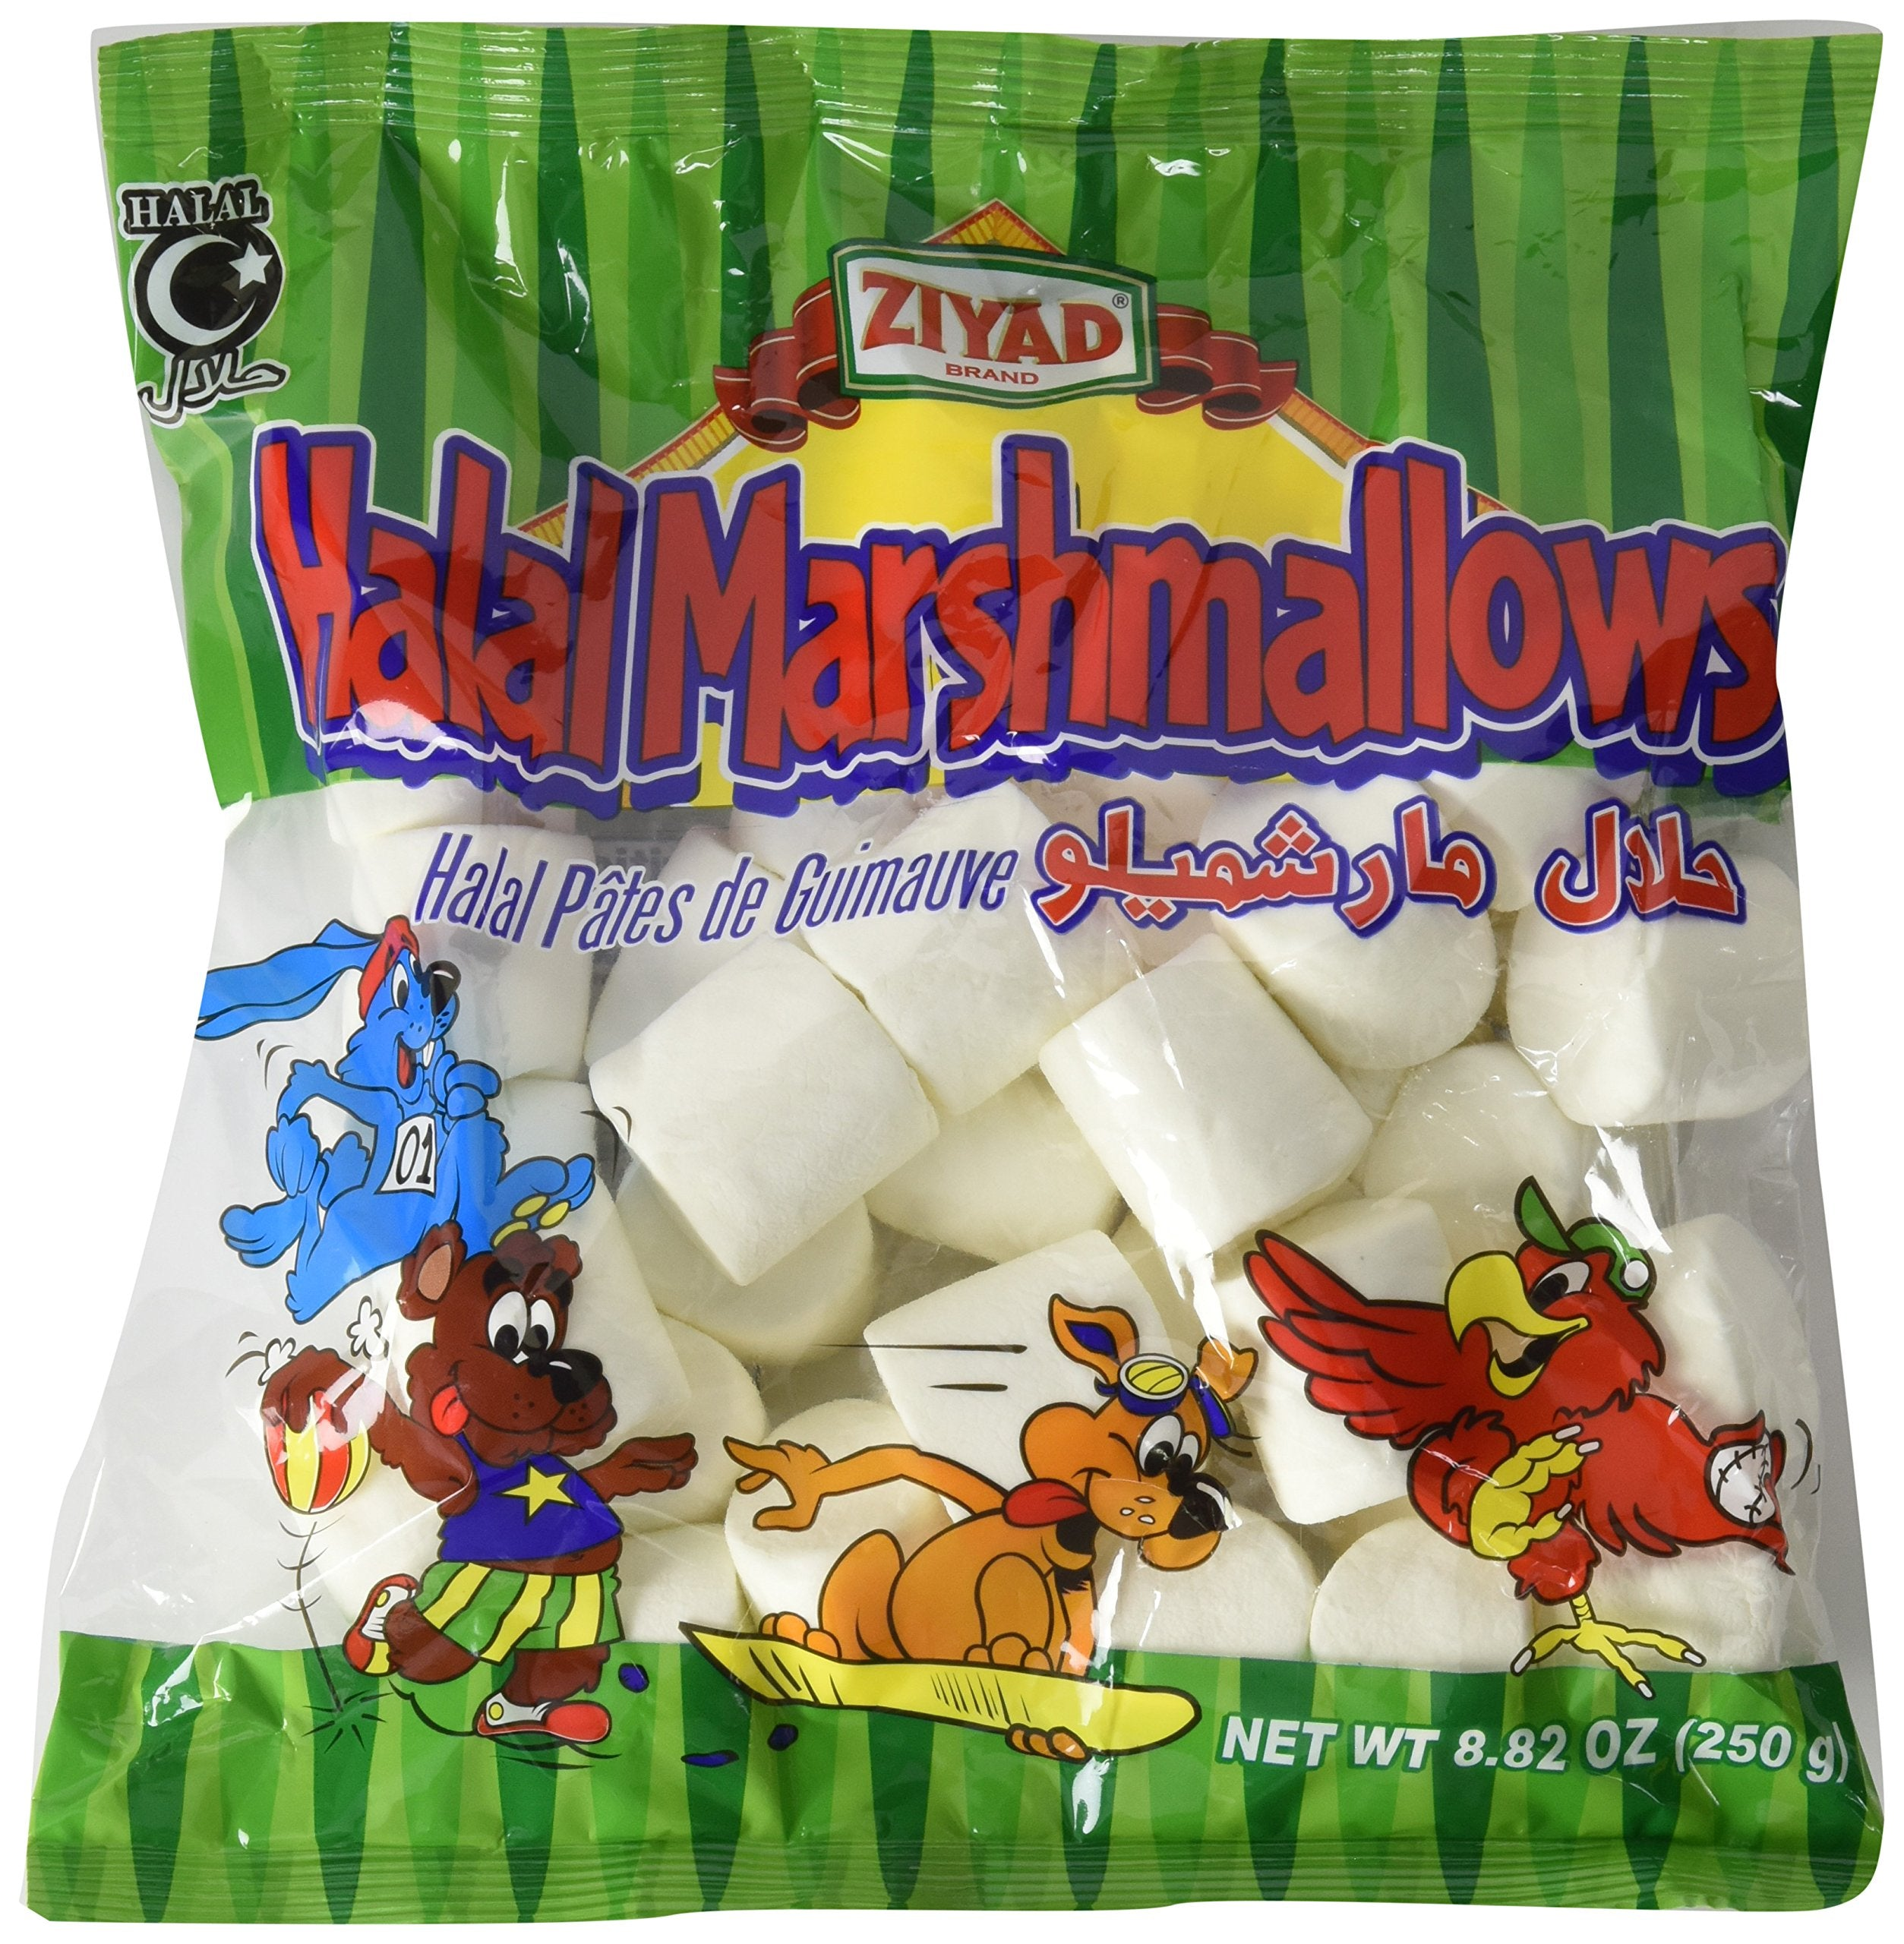 Ziyad Halal Marshmallows